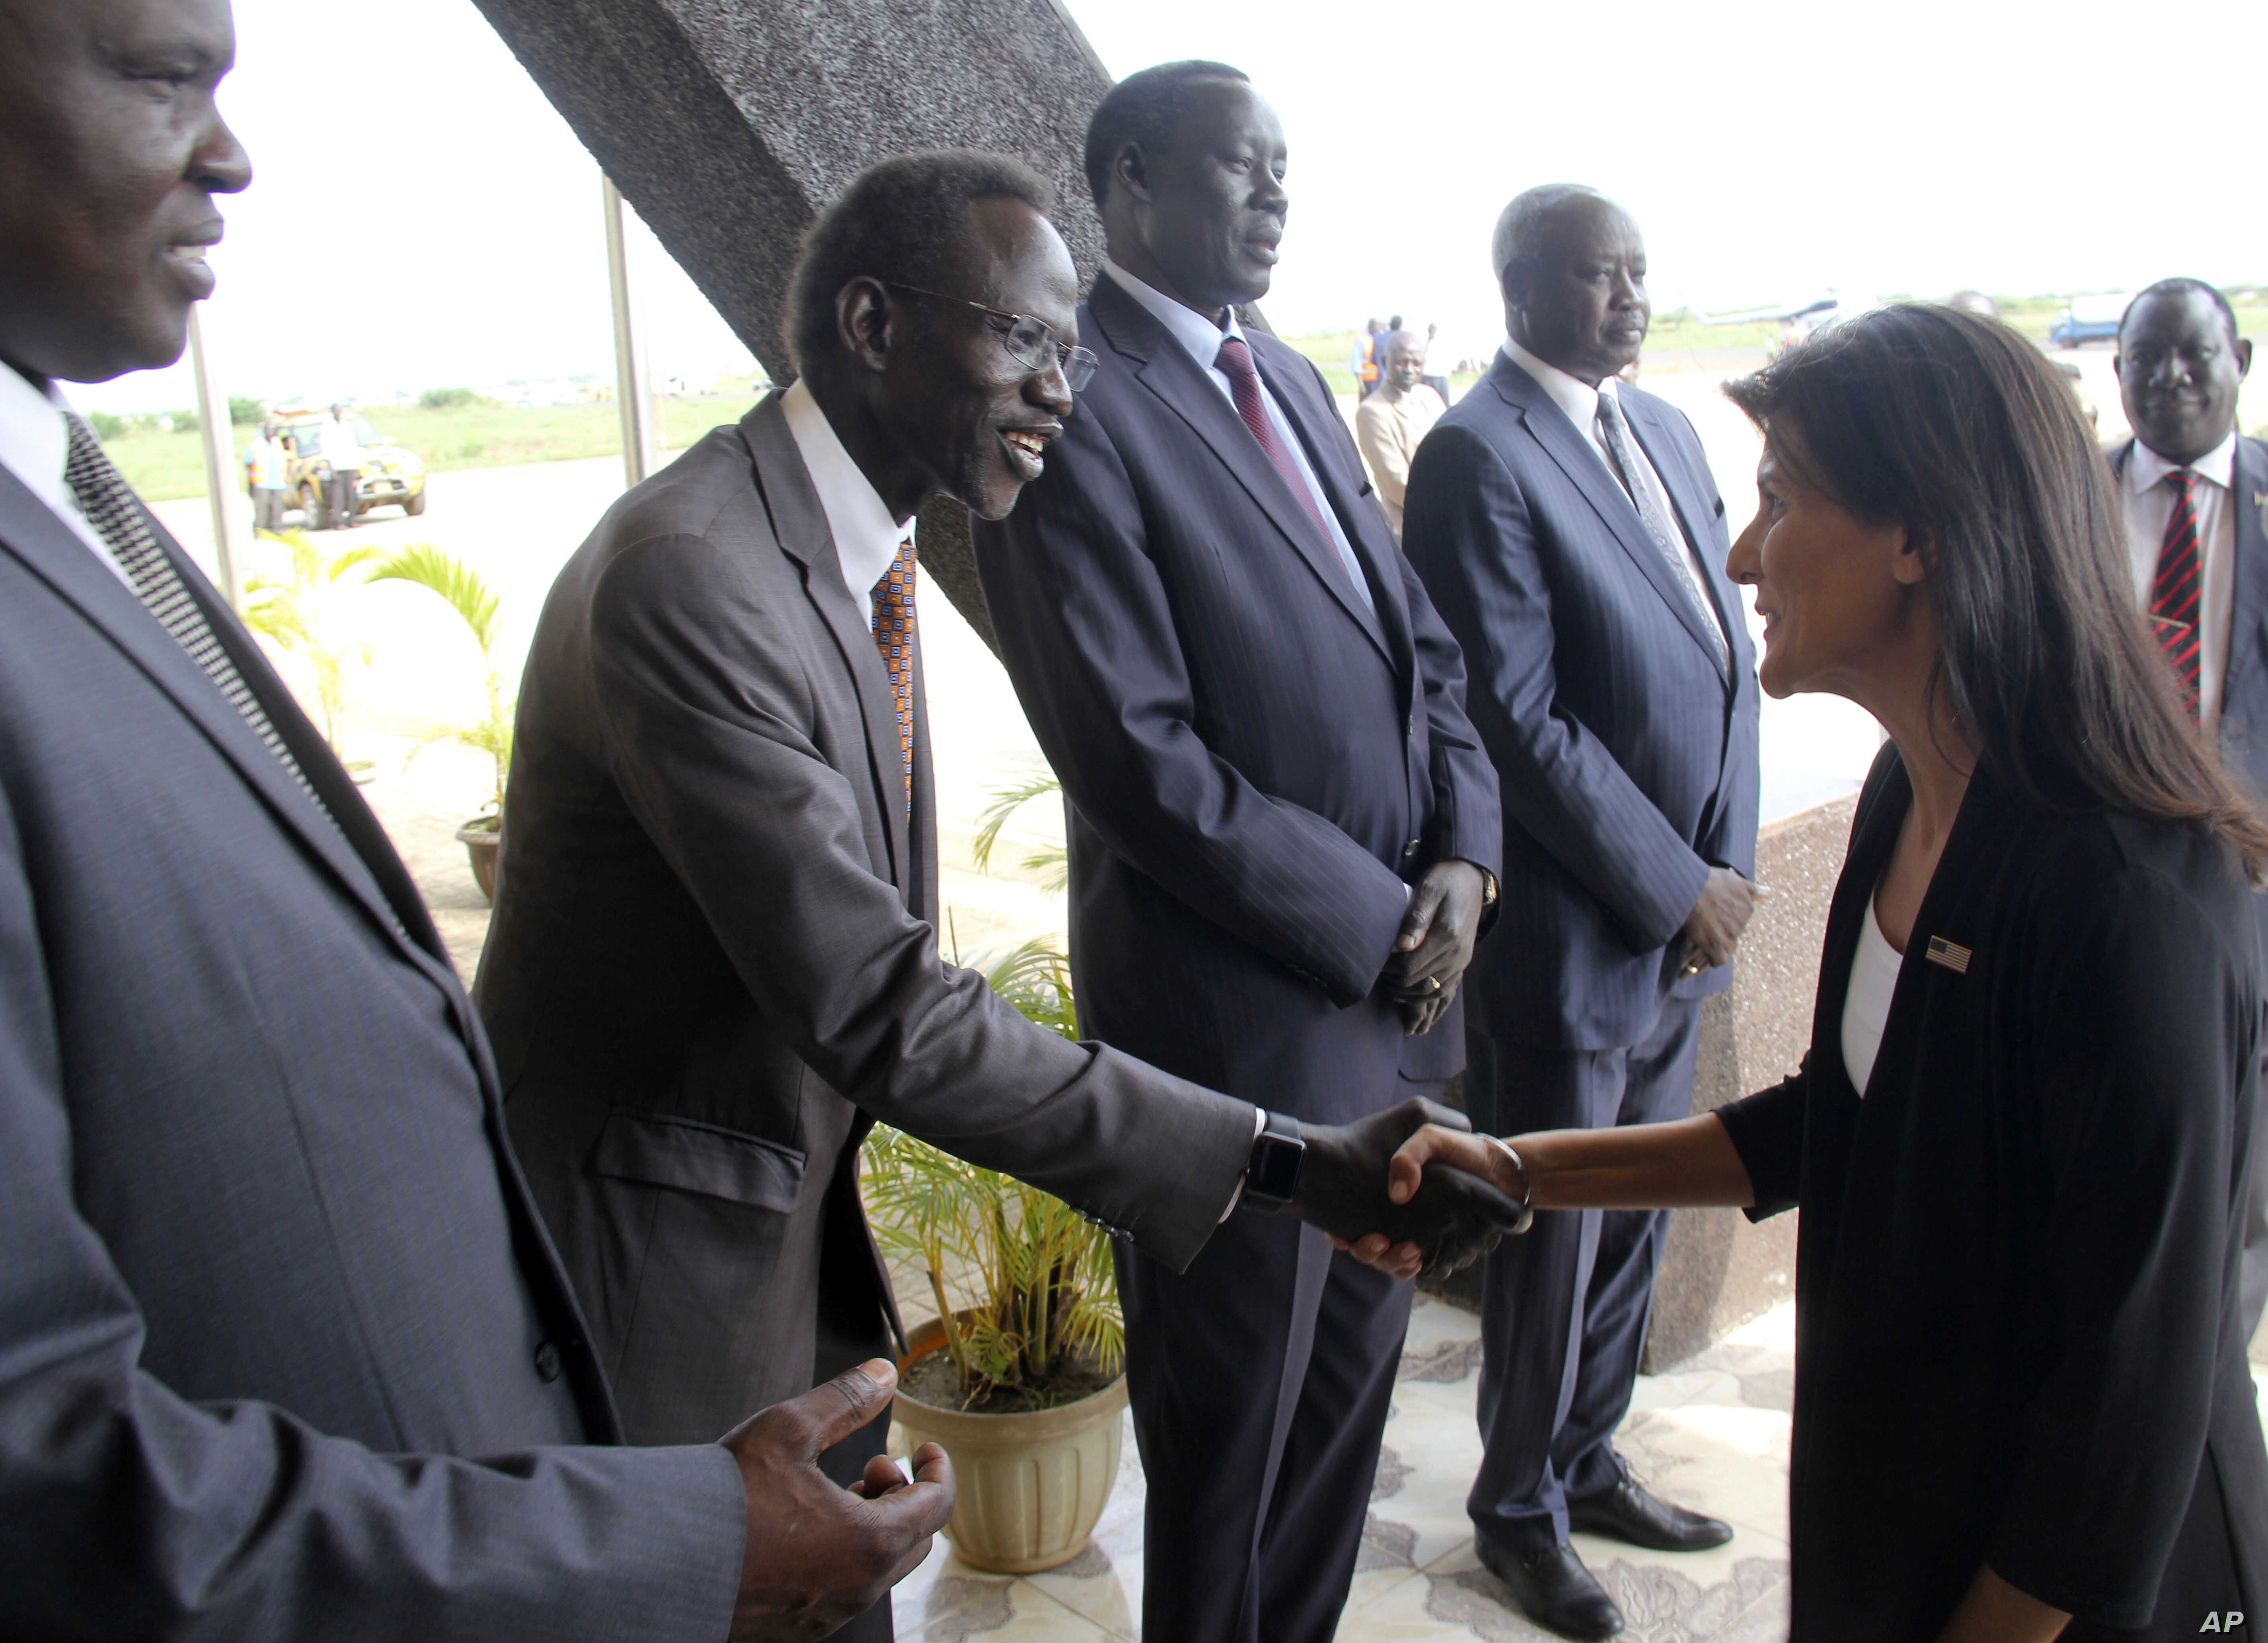 U.S. Ambassador to the United Nations Nikki Haley, right, meets South Sudanese officials on her arrival in Juba, South Sudan, Oct. 25, 2017.